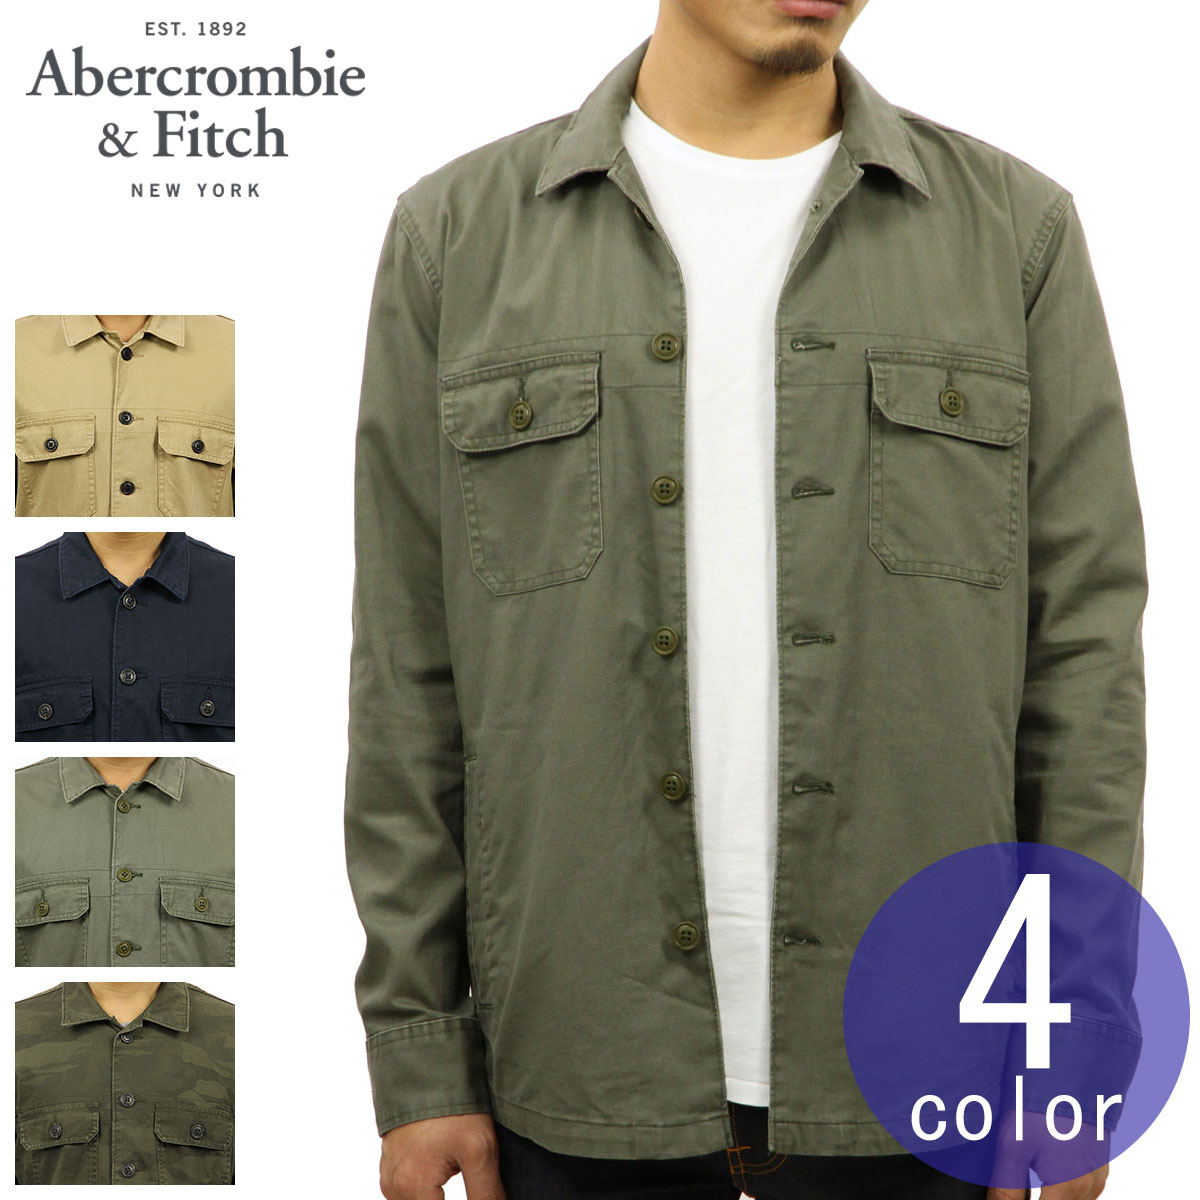 df8fec93840a8 Categories. « All Categories · Men's Clothing · Coats & Jackets · ABBA  black Abercrombie & Fitch regular article men outer military shirt ...